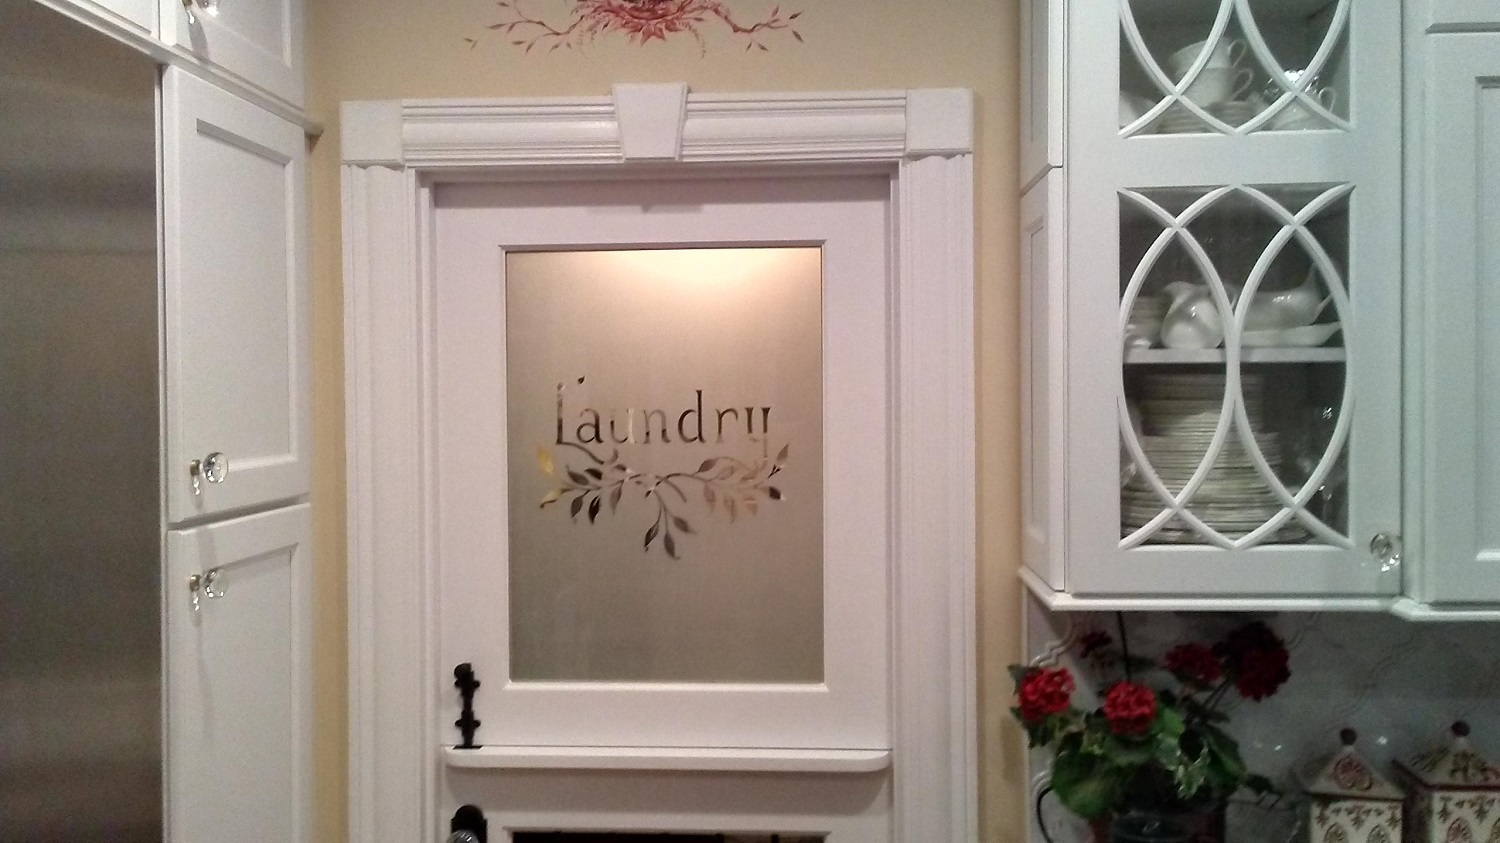 Sandblasted glass laundry room door